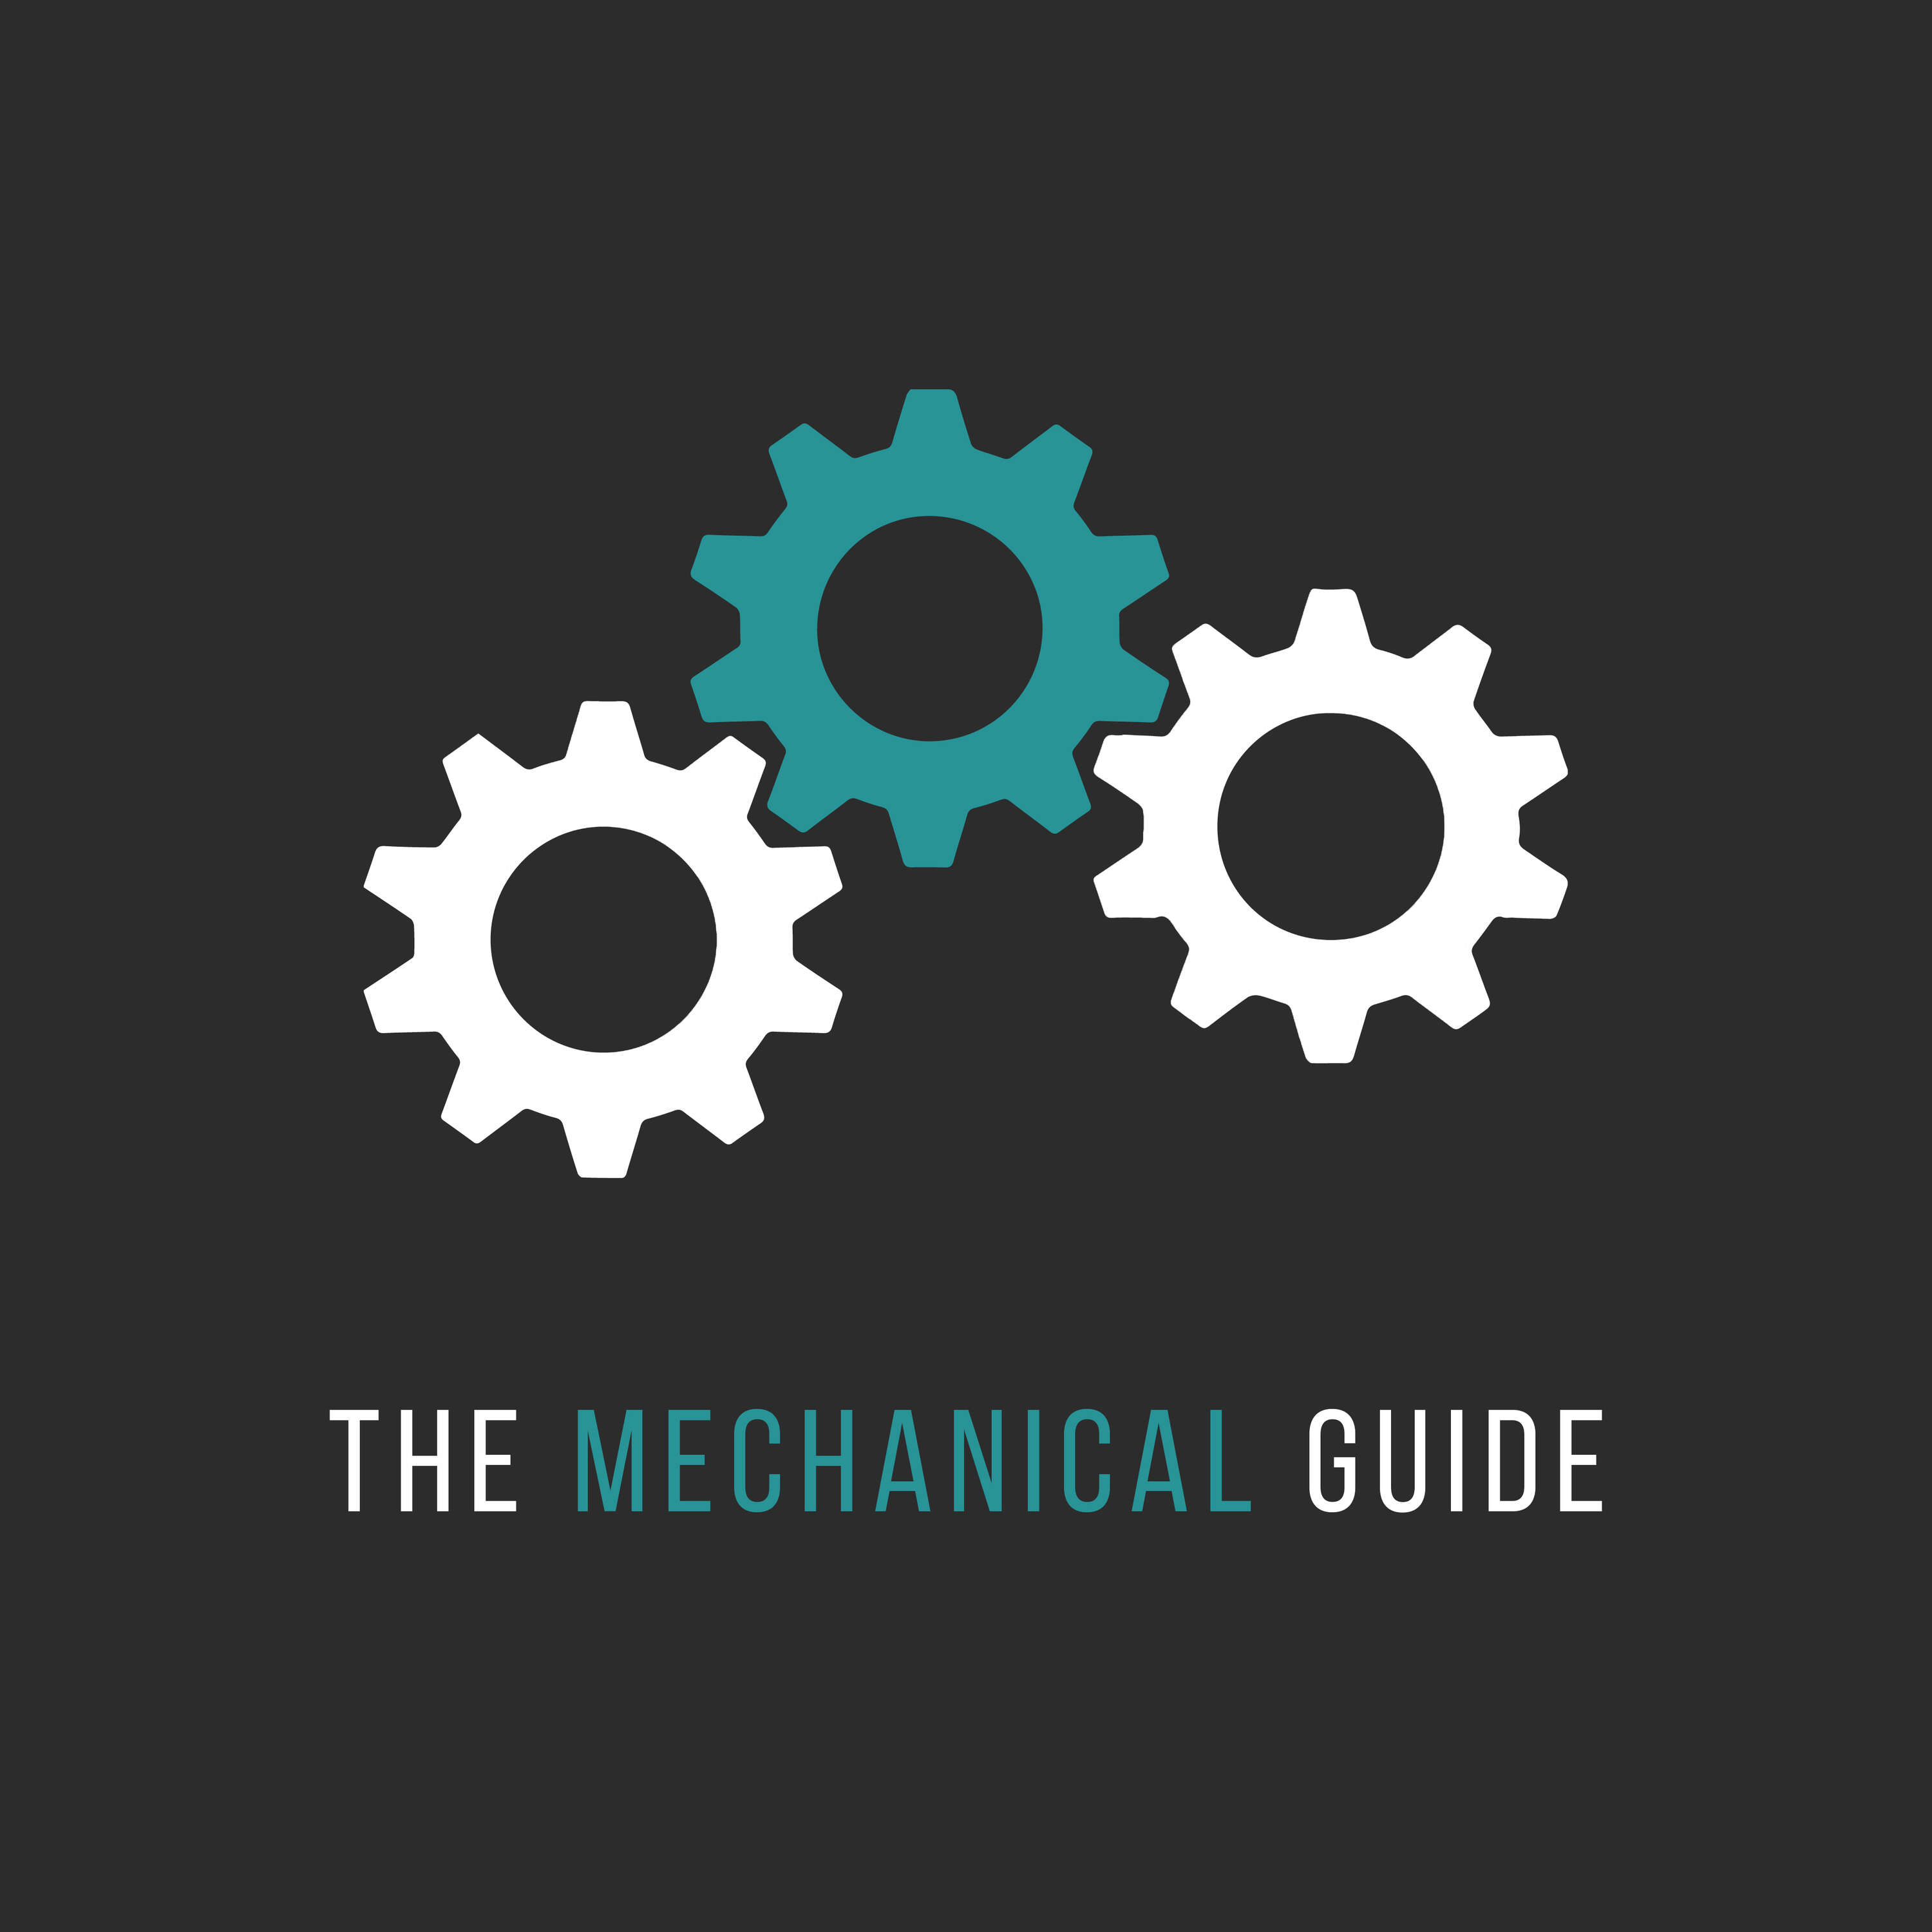 The Mechanical Guide